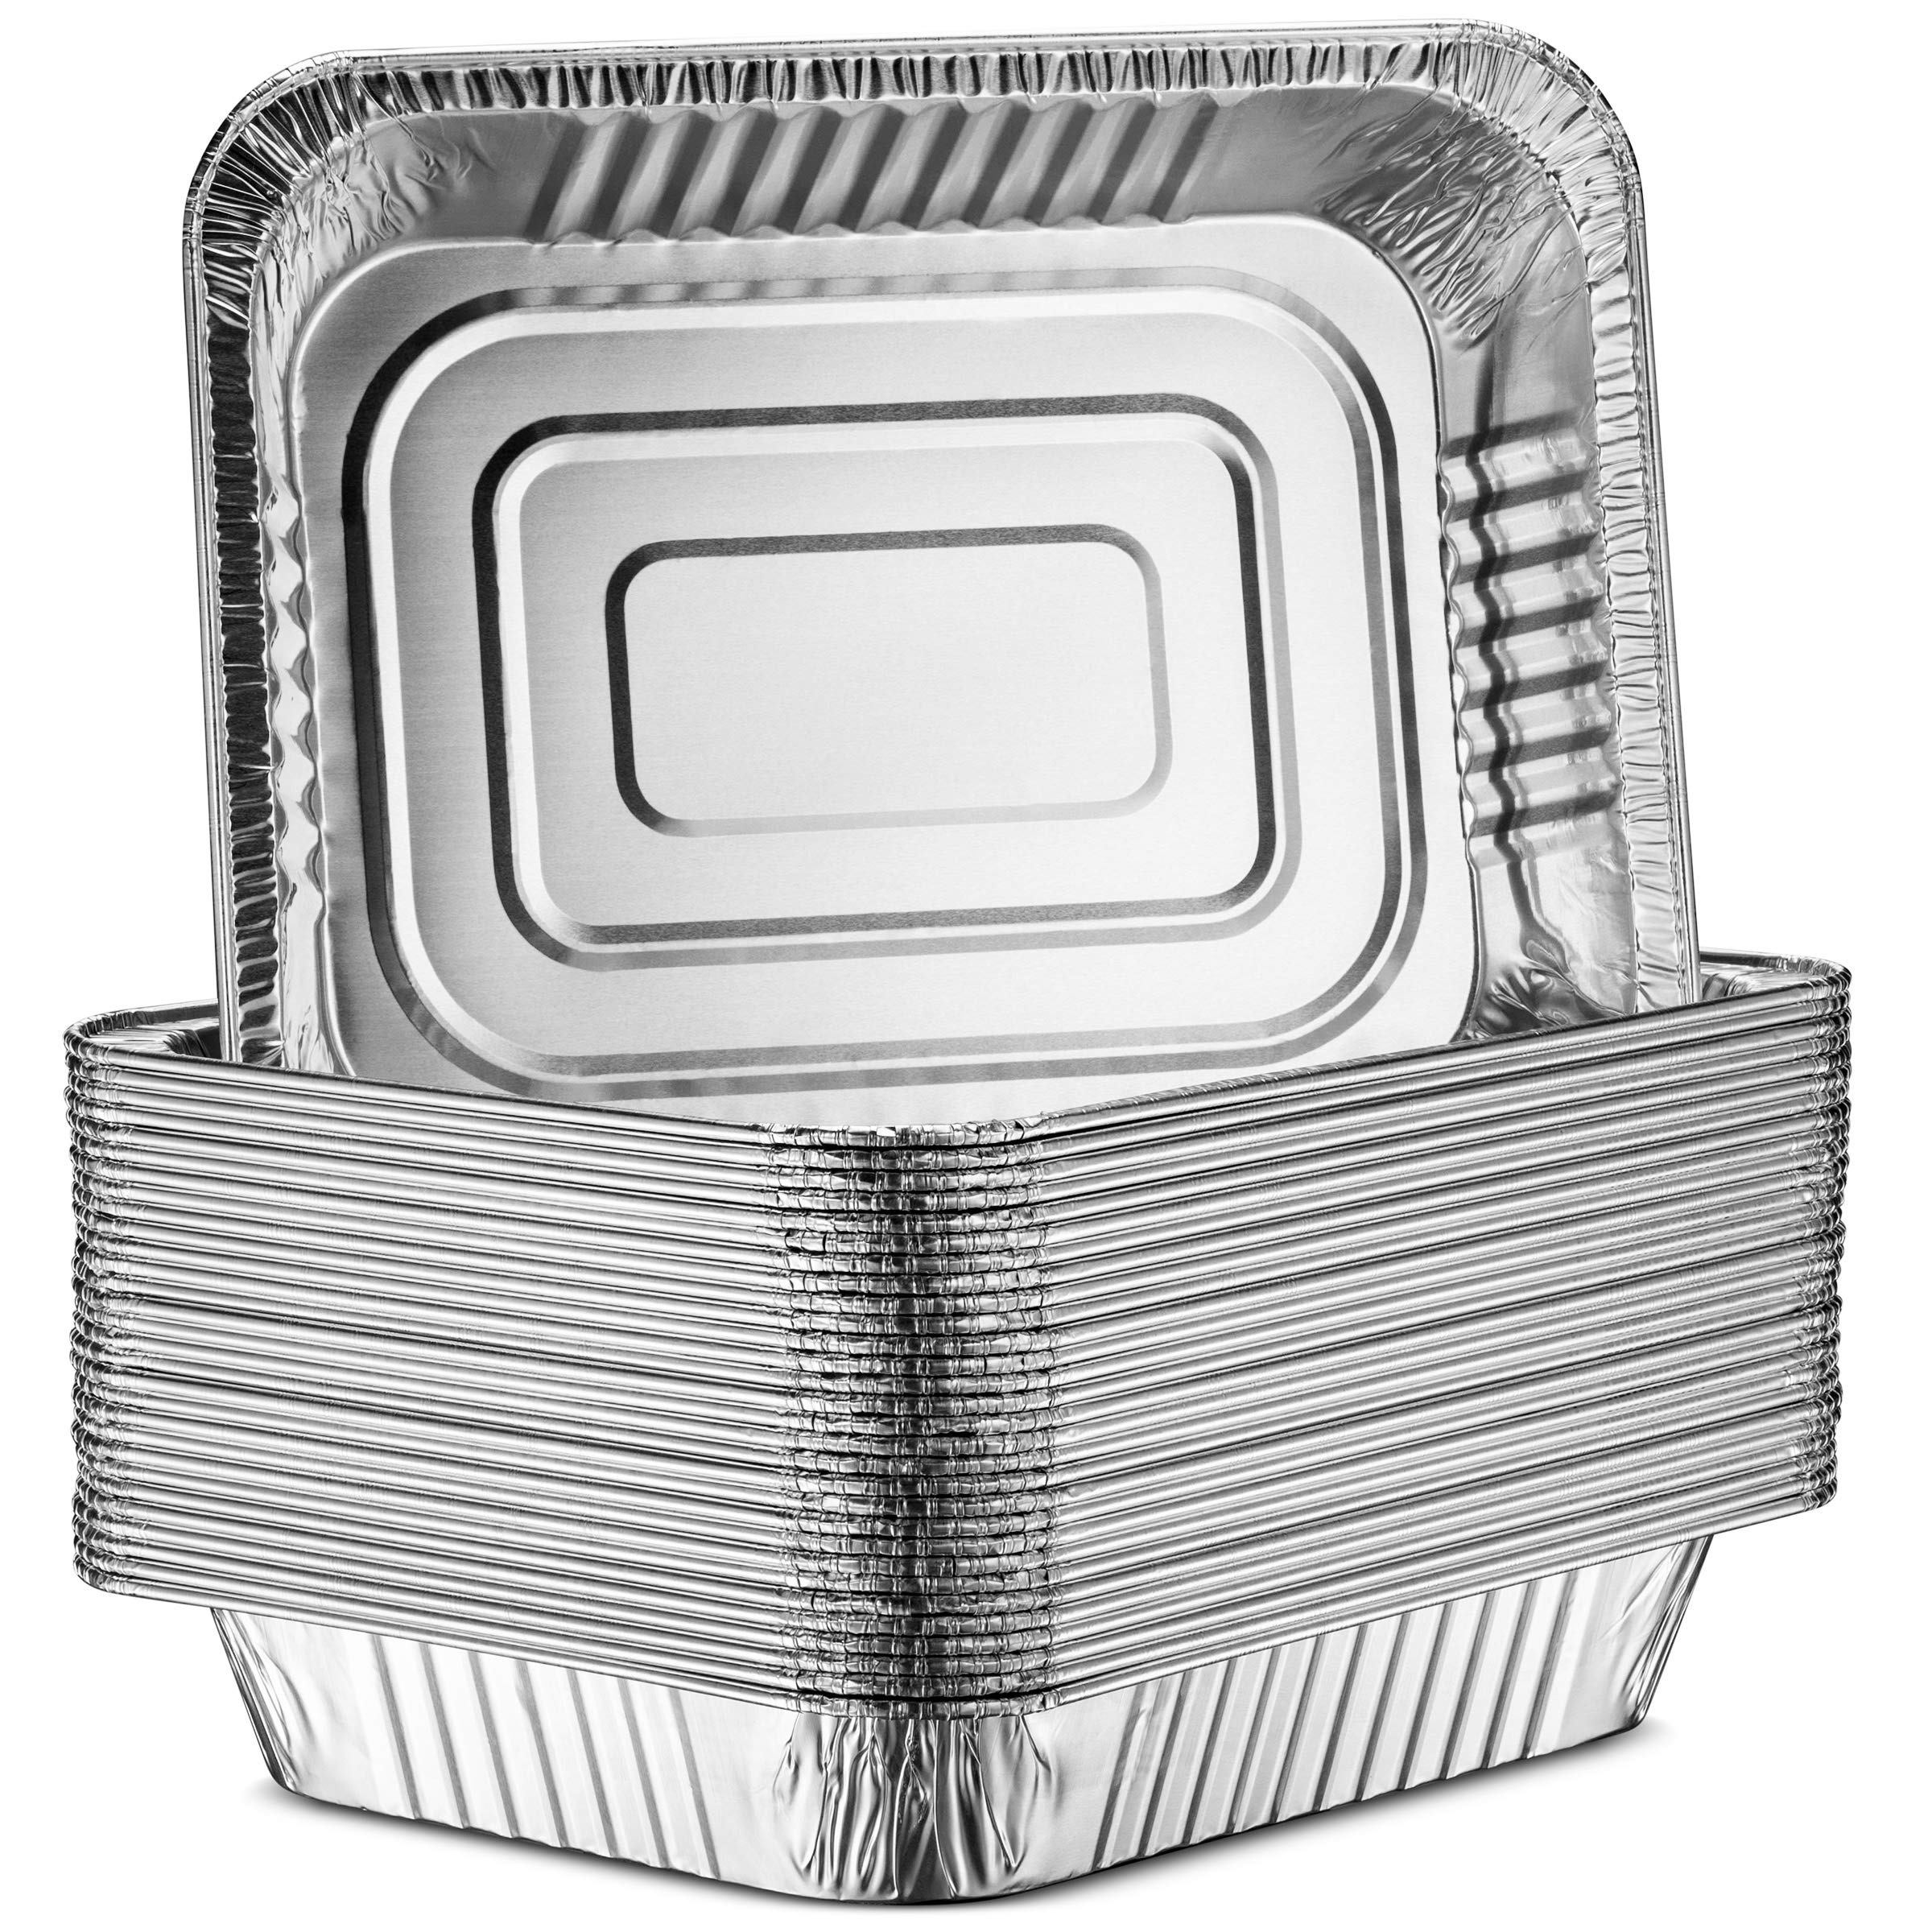 """30-Pack Aluminum Half-Size Roasting Pans - Super-Thick 9x13"""" Standard Size Chafing Pans Tins - Eco-Friendly Recyclable Aluminum - Portable Food Storage Containers - By MontoPack (Aluminum)"""